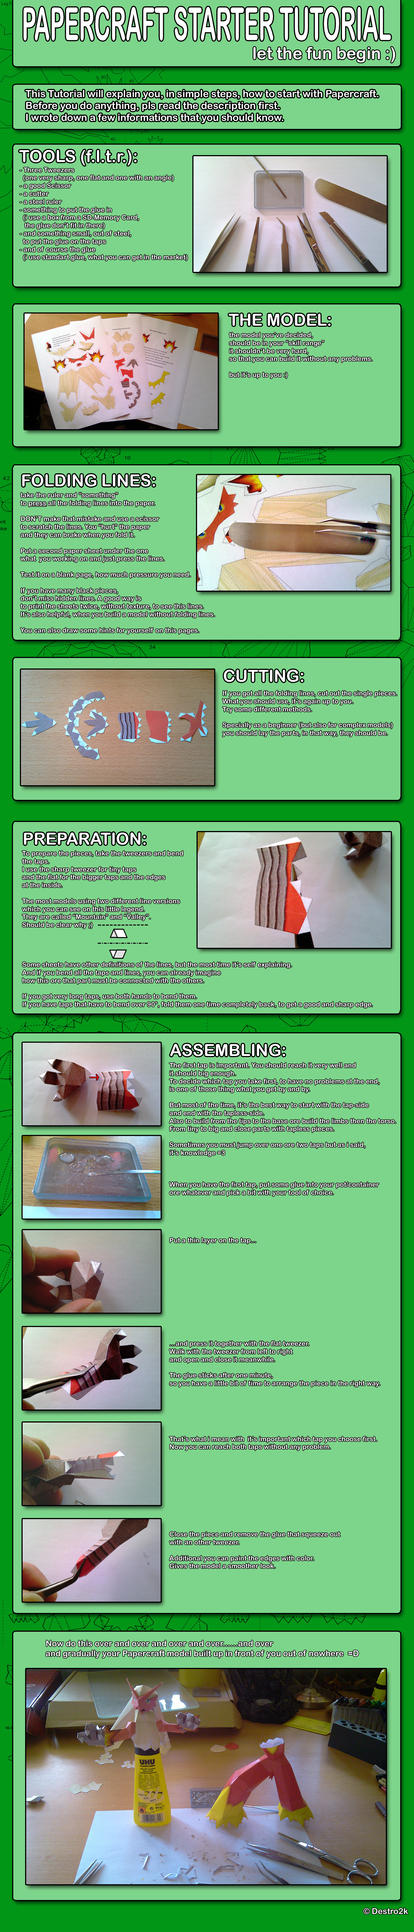 Papercraft Starter Tutorial by Destro2k